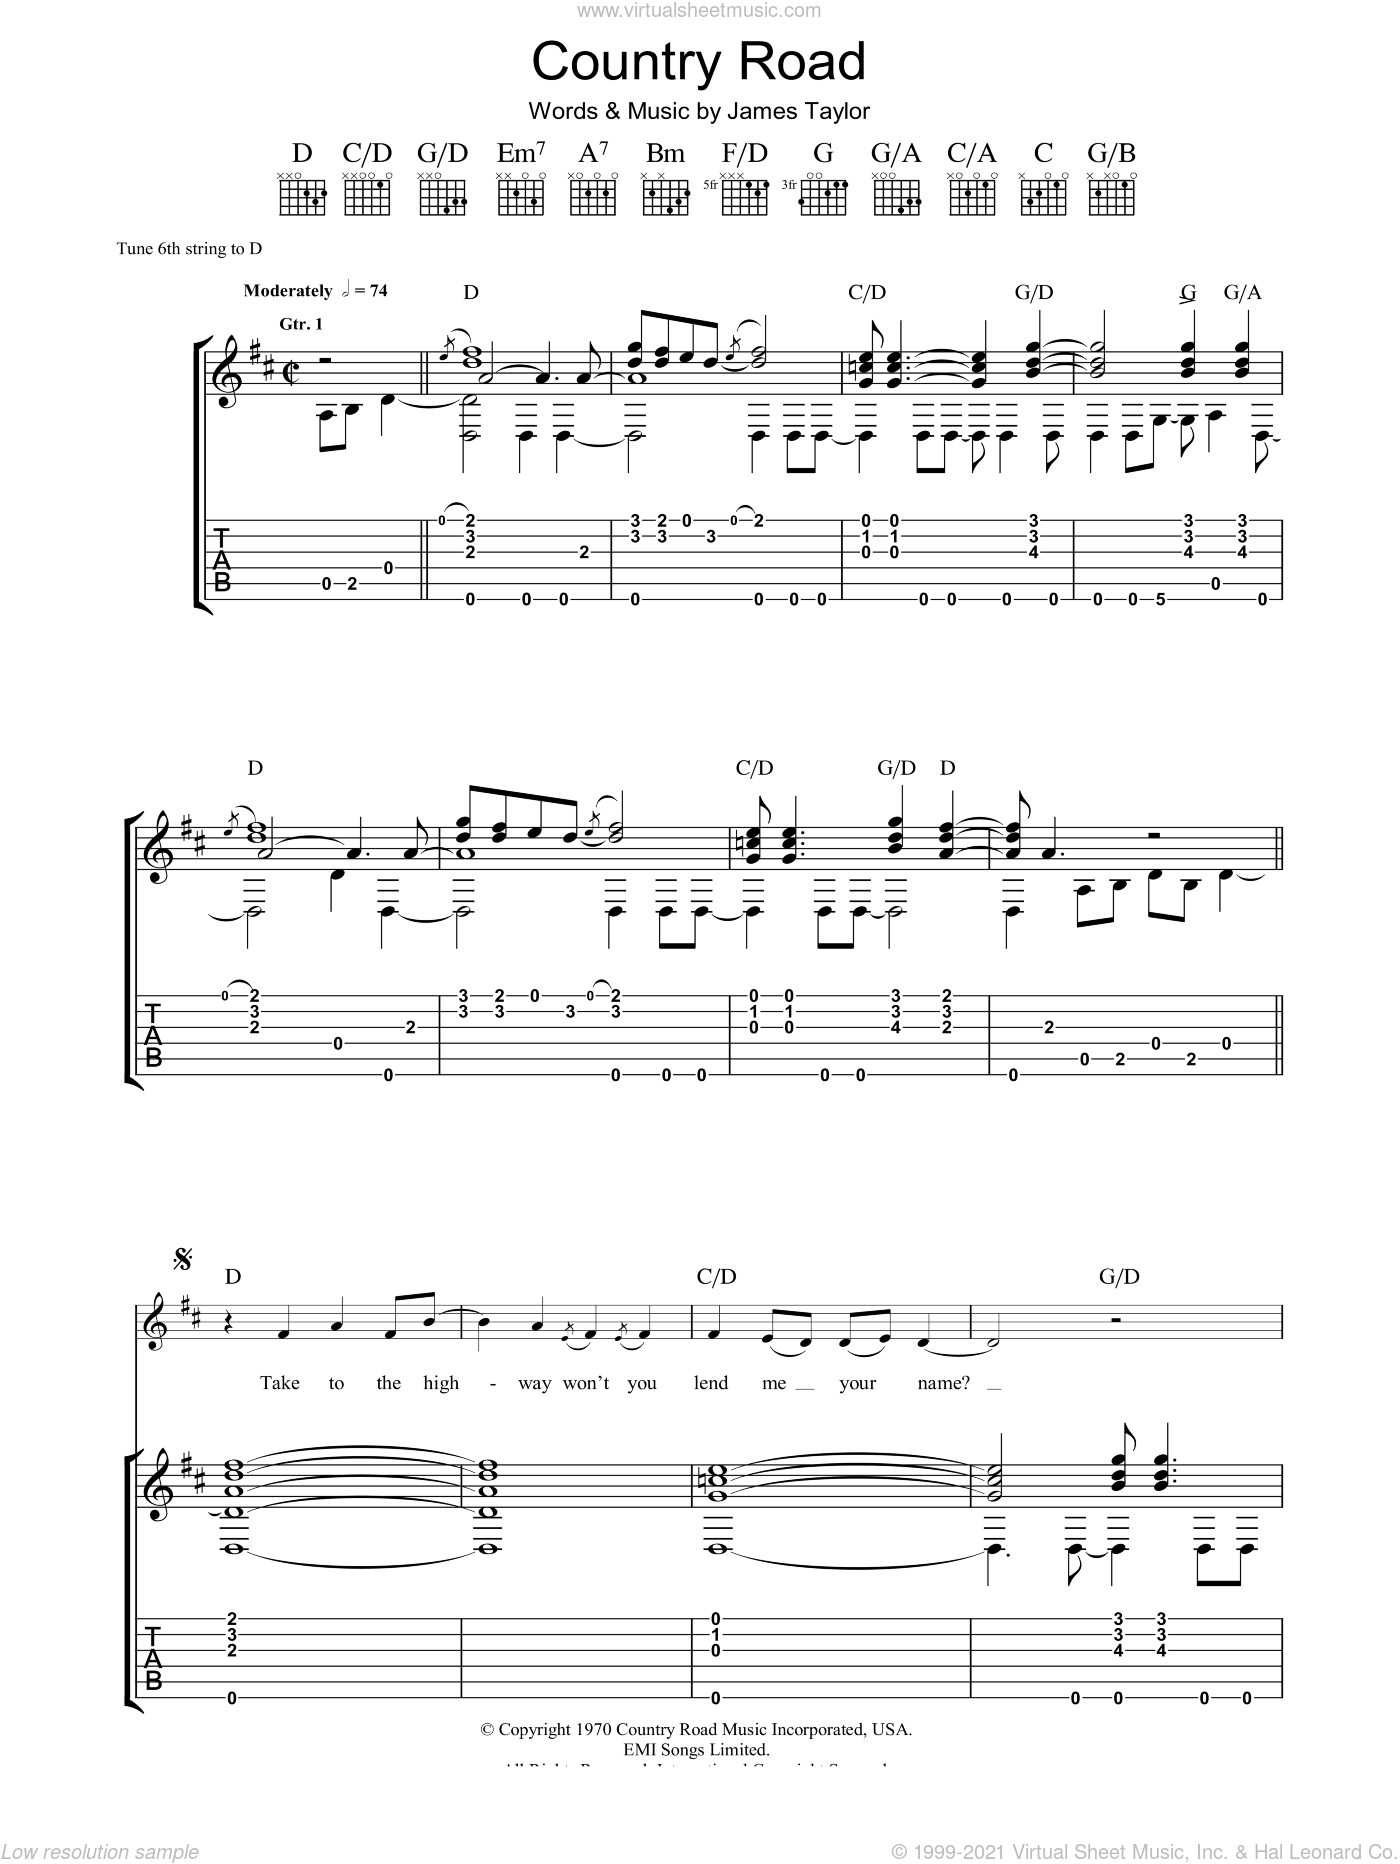 Country Road sheet music for guitar (tablature) by James Taylor. Score Image Preview.